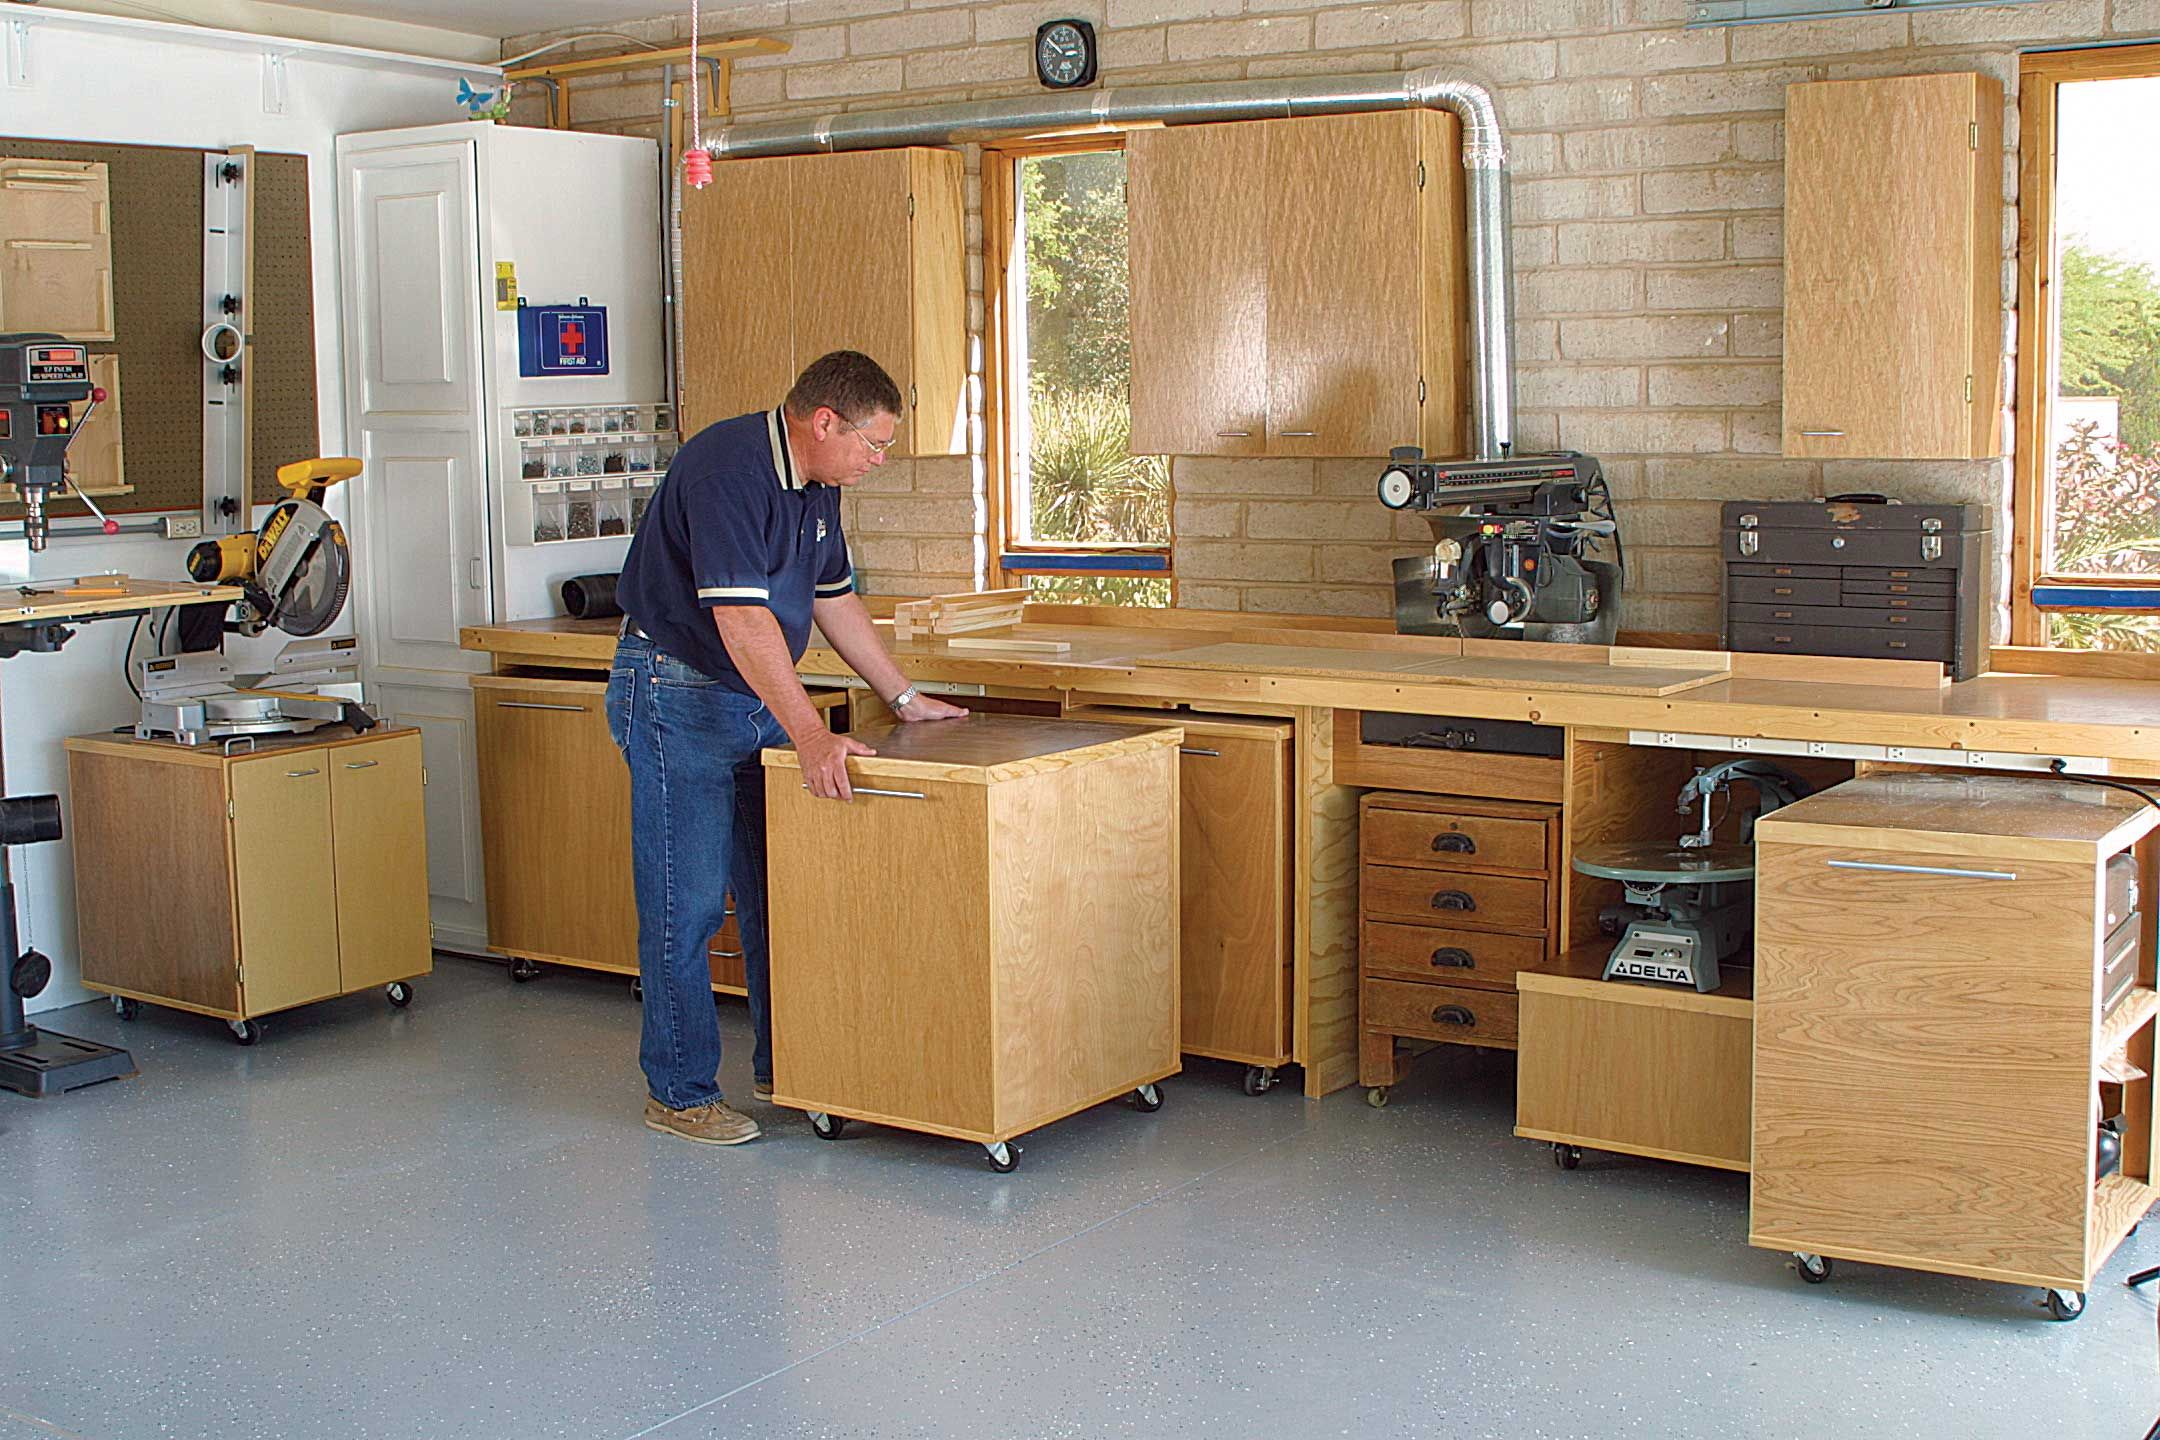 AWESOME Workshop Or Garage Setup! Rollout Storage Units